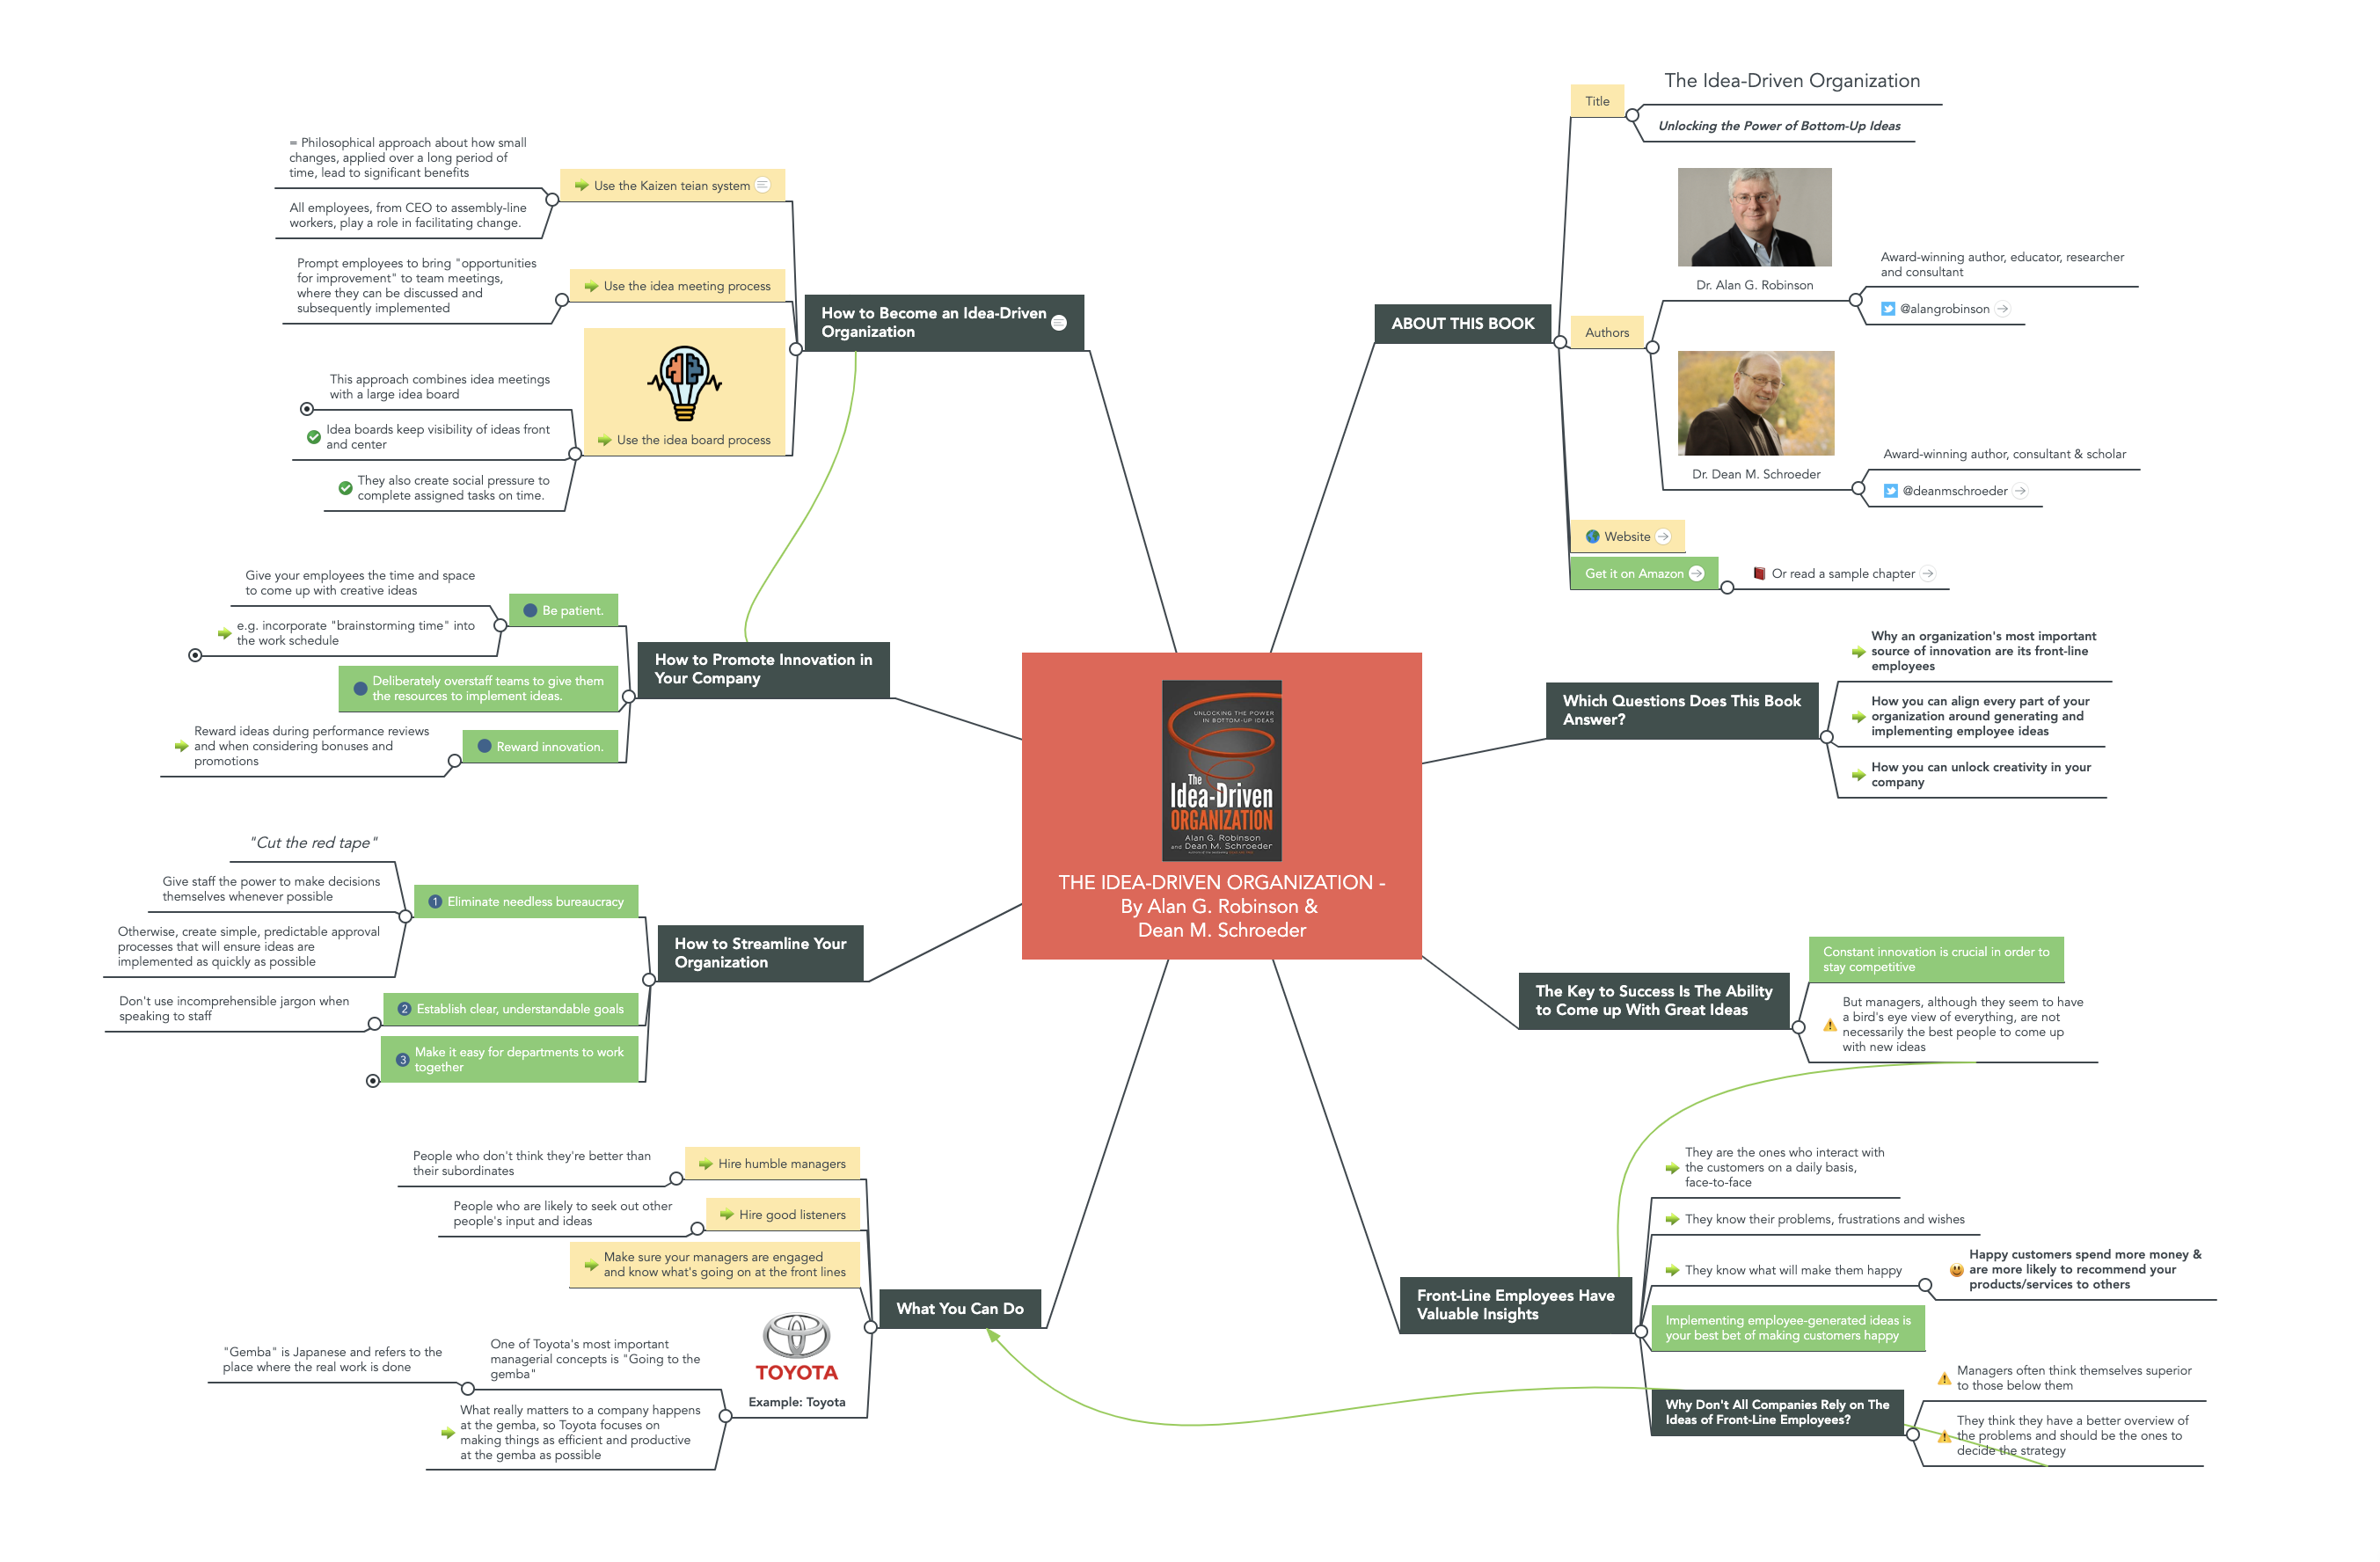 The Idea-Driven Organization Mind Map